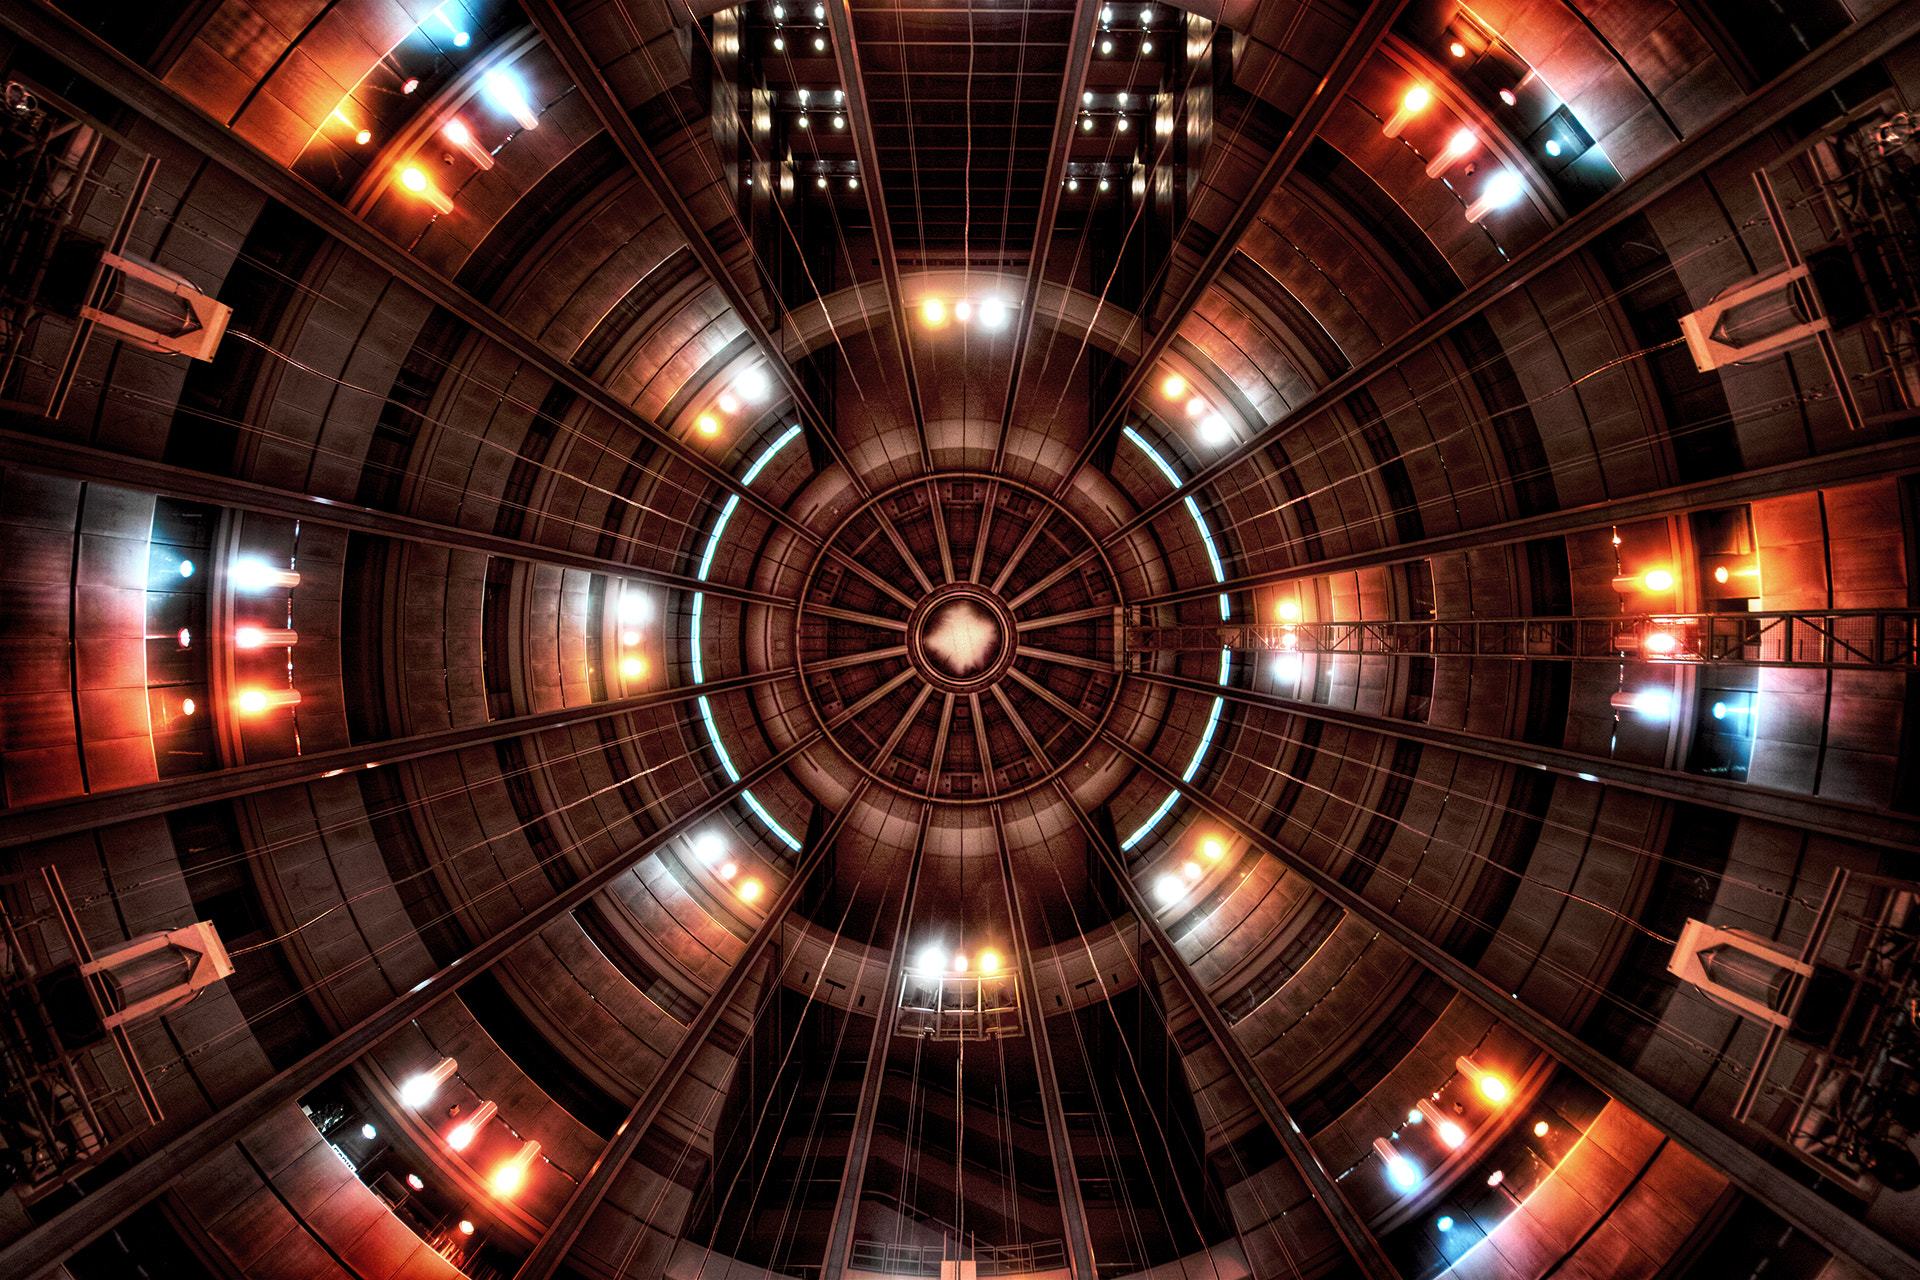 Photograph The Core of the Starship by Azul Obscura on 500px